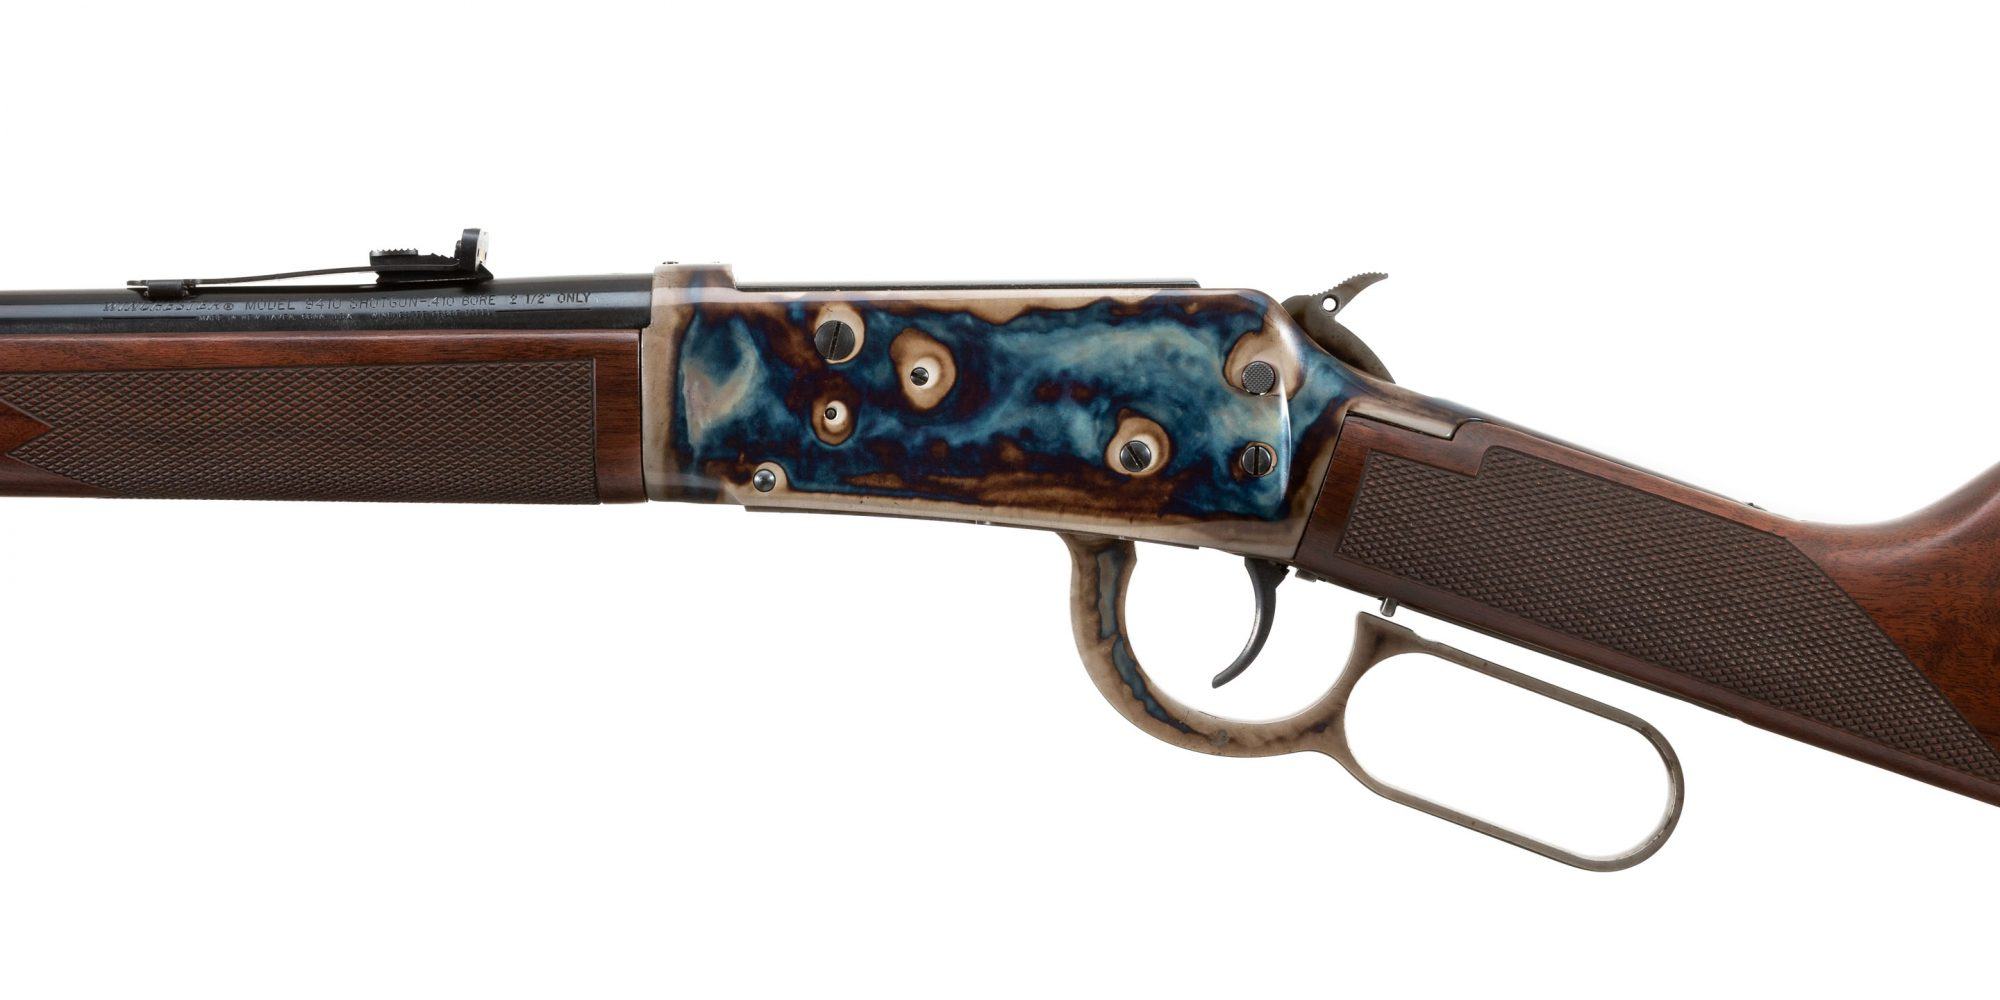 Photo of a Turnbull-finished Winchester Model 9410, for sale by Turnbull Restoration of Bloomfield, NY